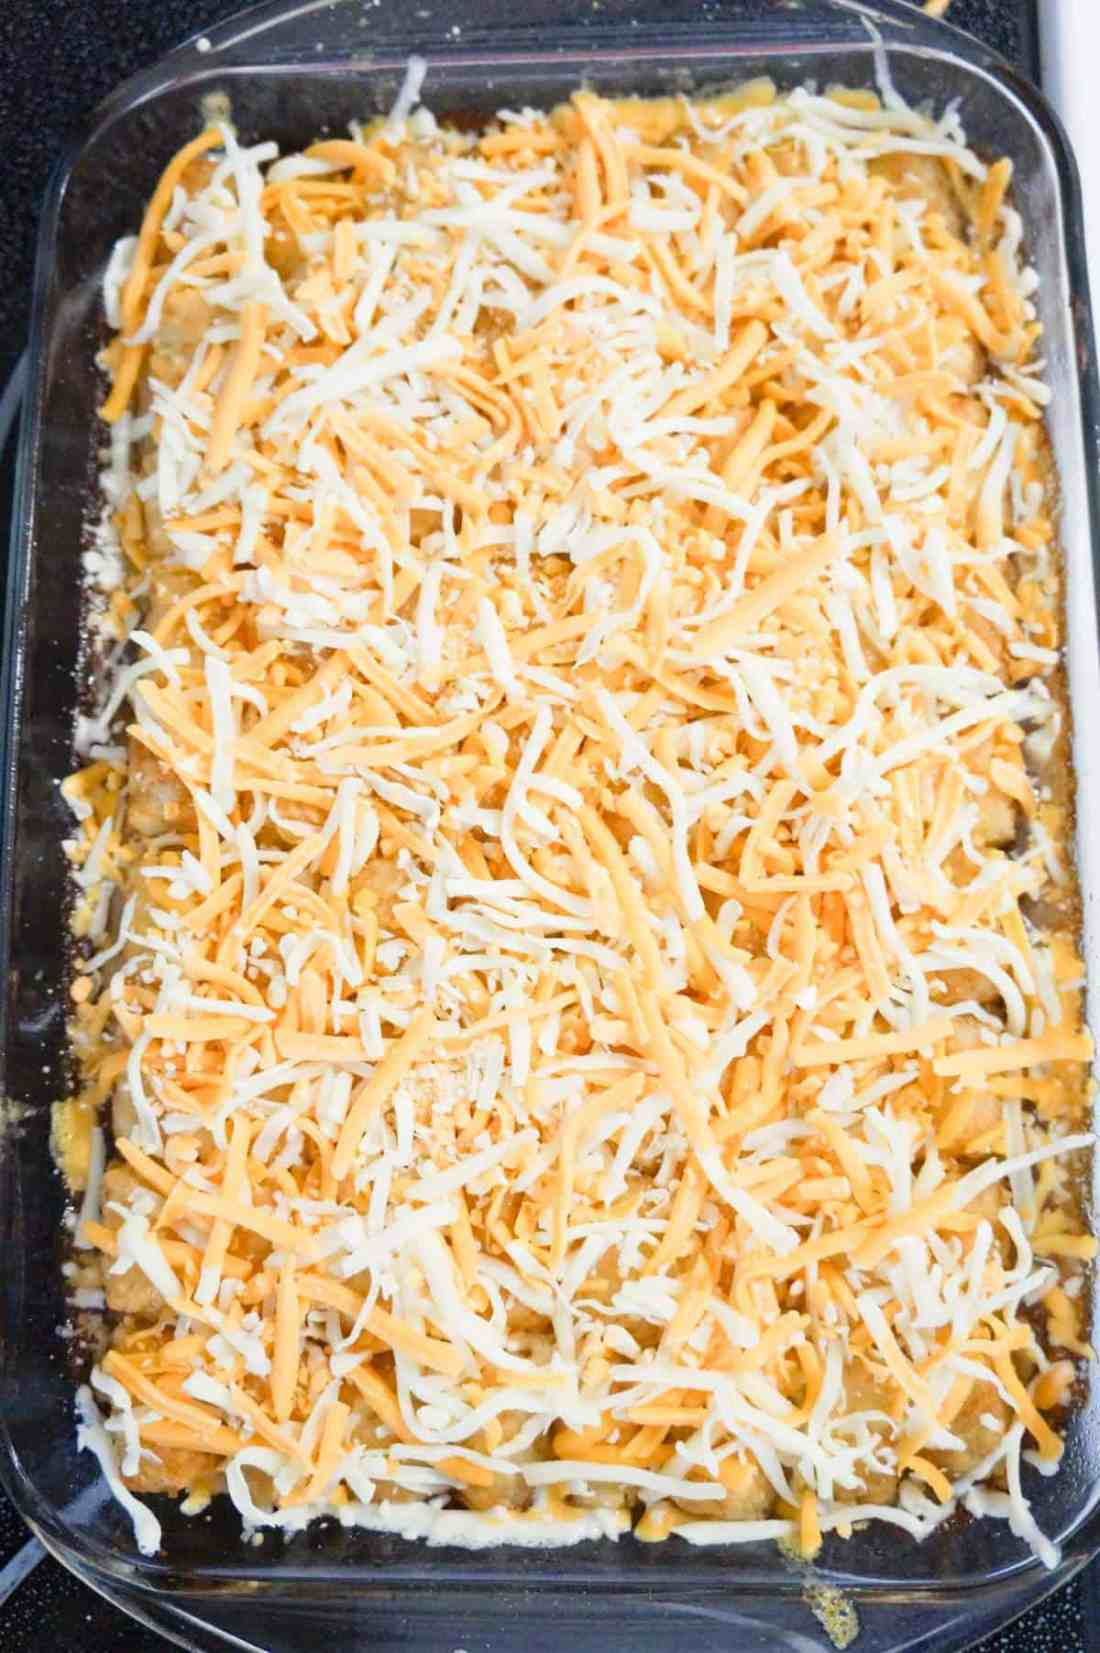 shredded cheese on top of tater tot casserole